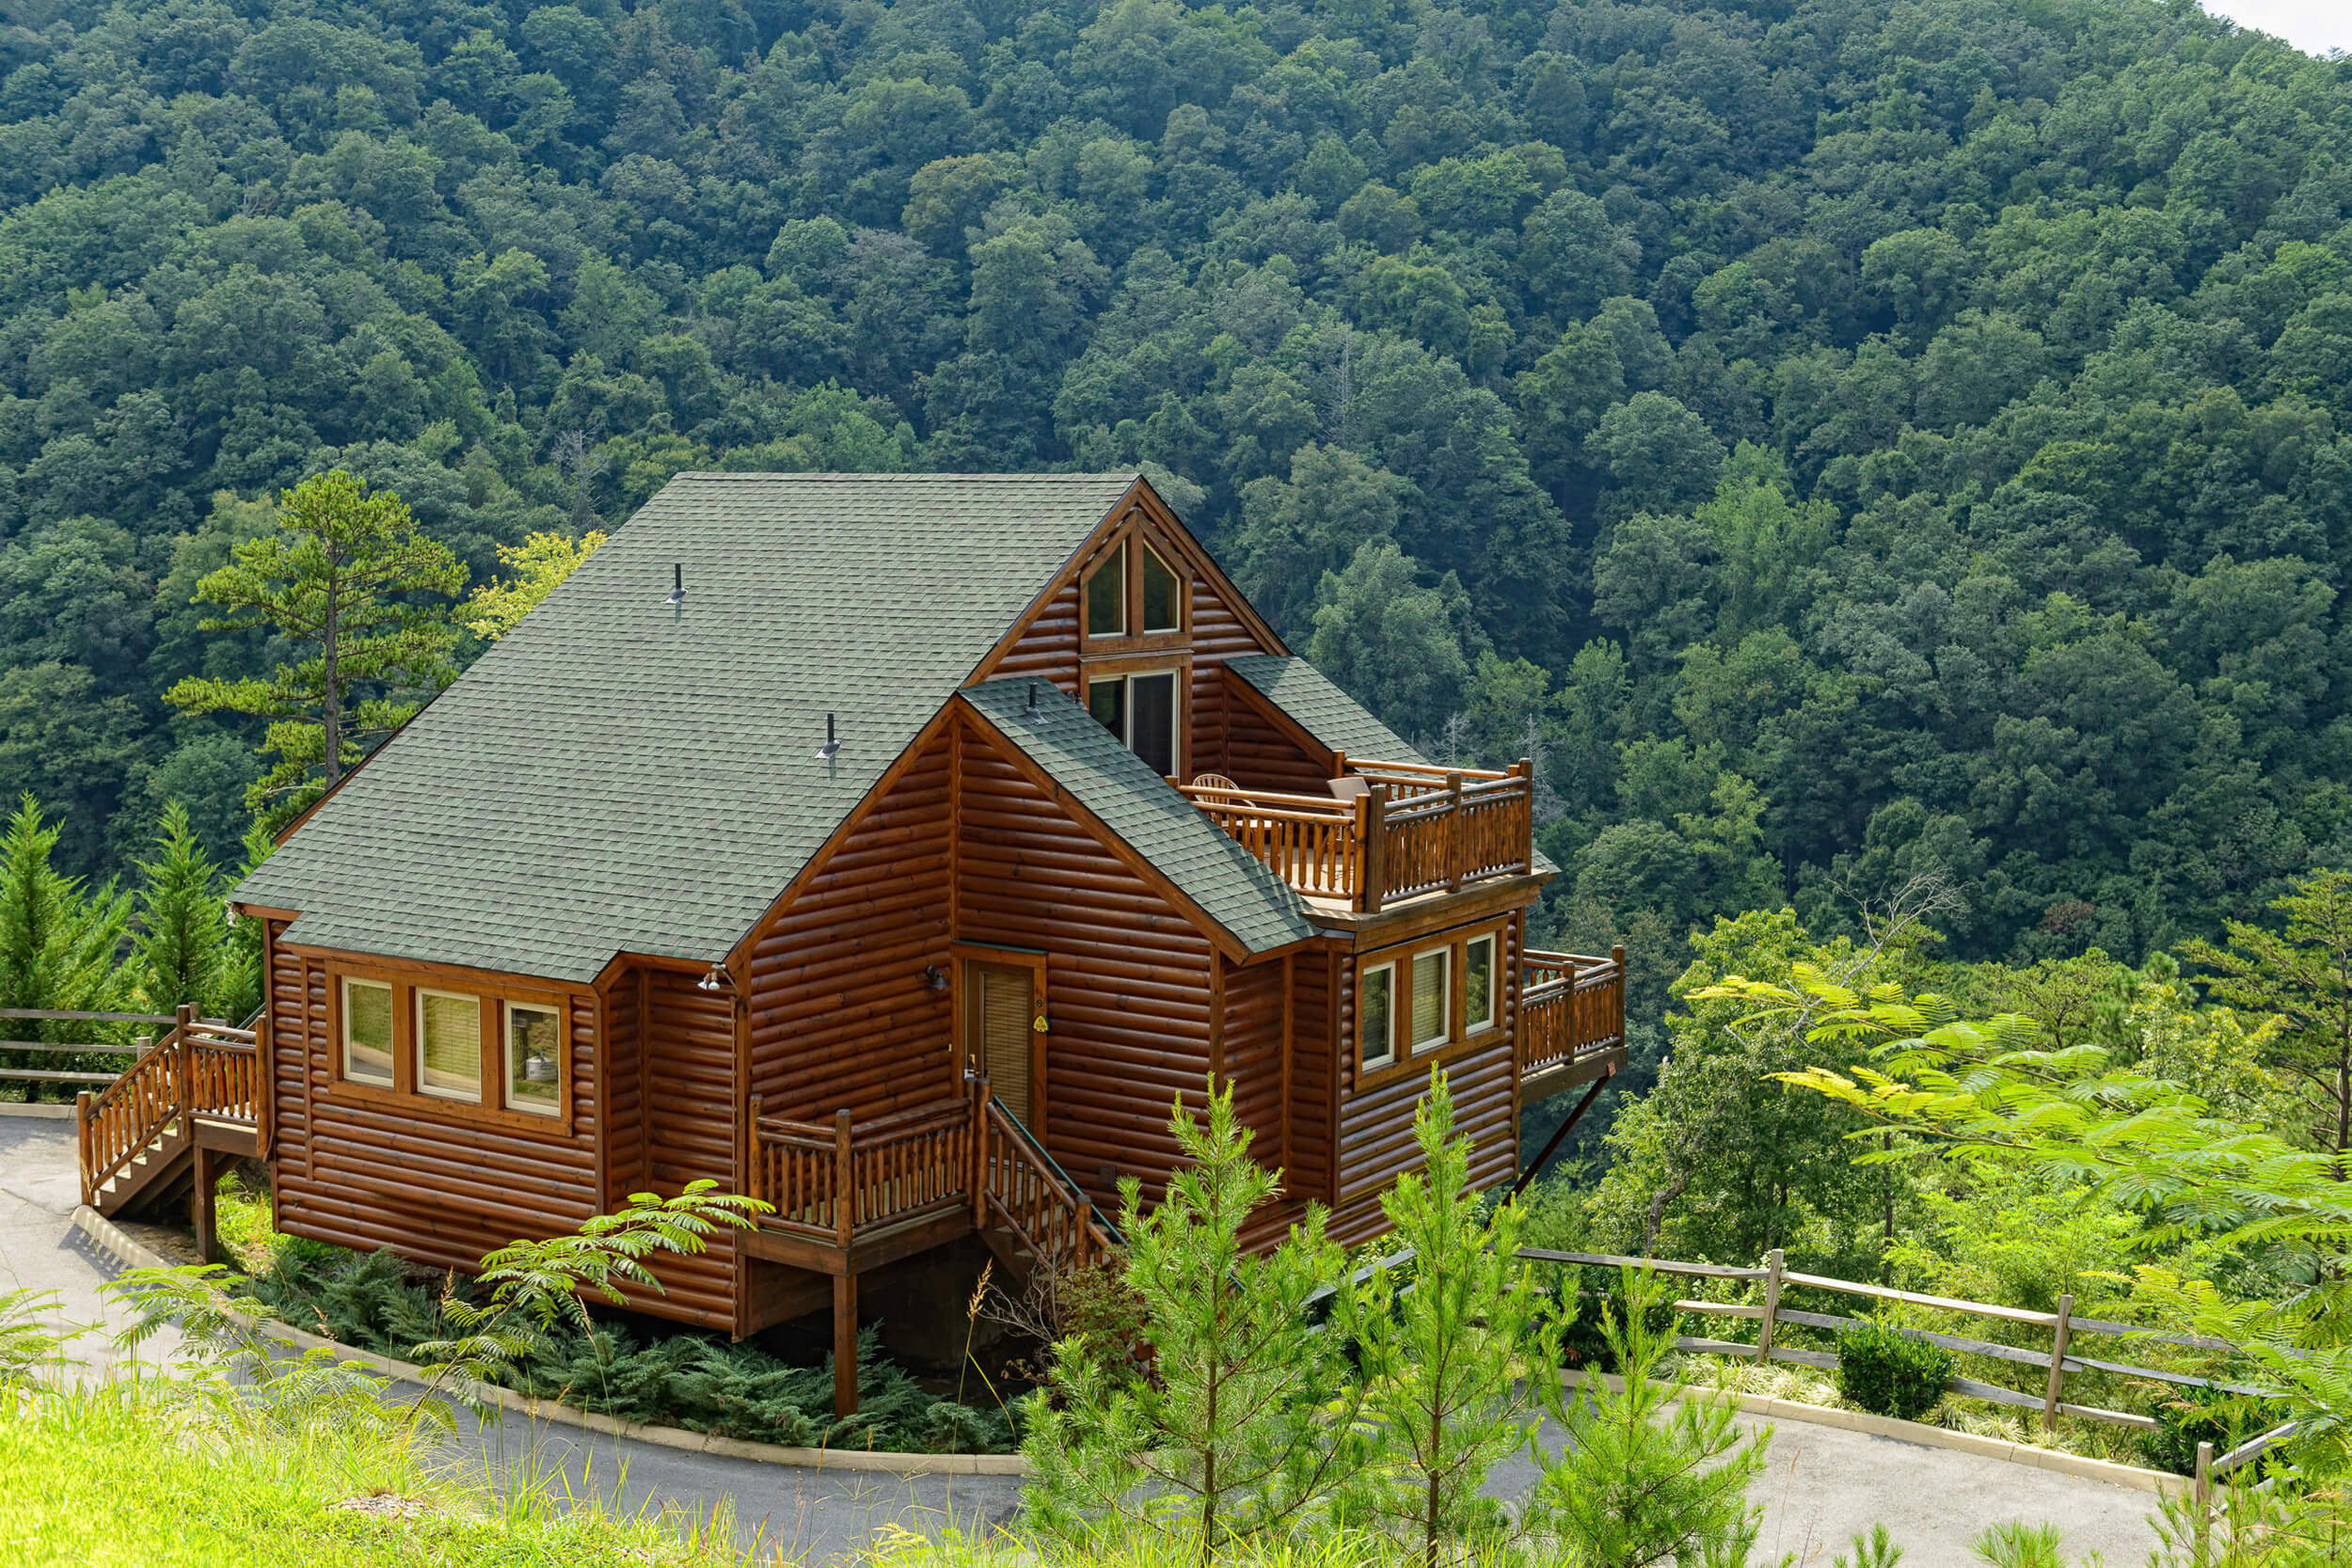 cabins tennessee park mountains national cabin smoky pin mountain landscapes homestead